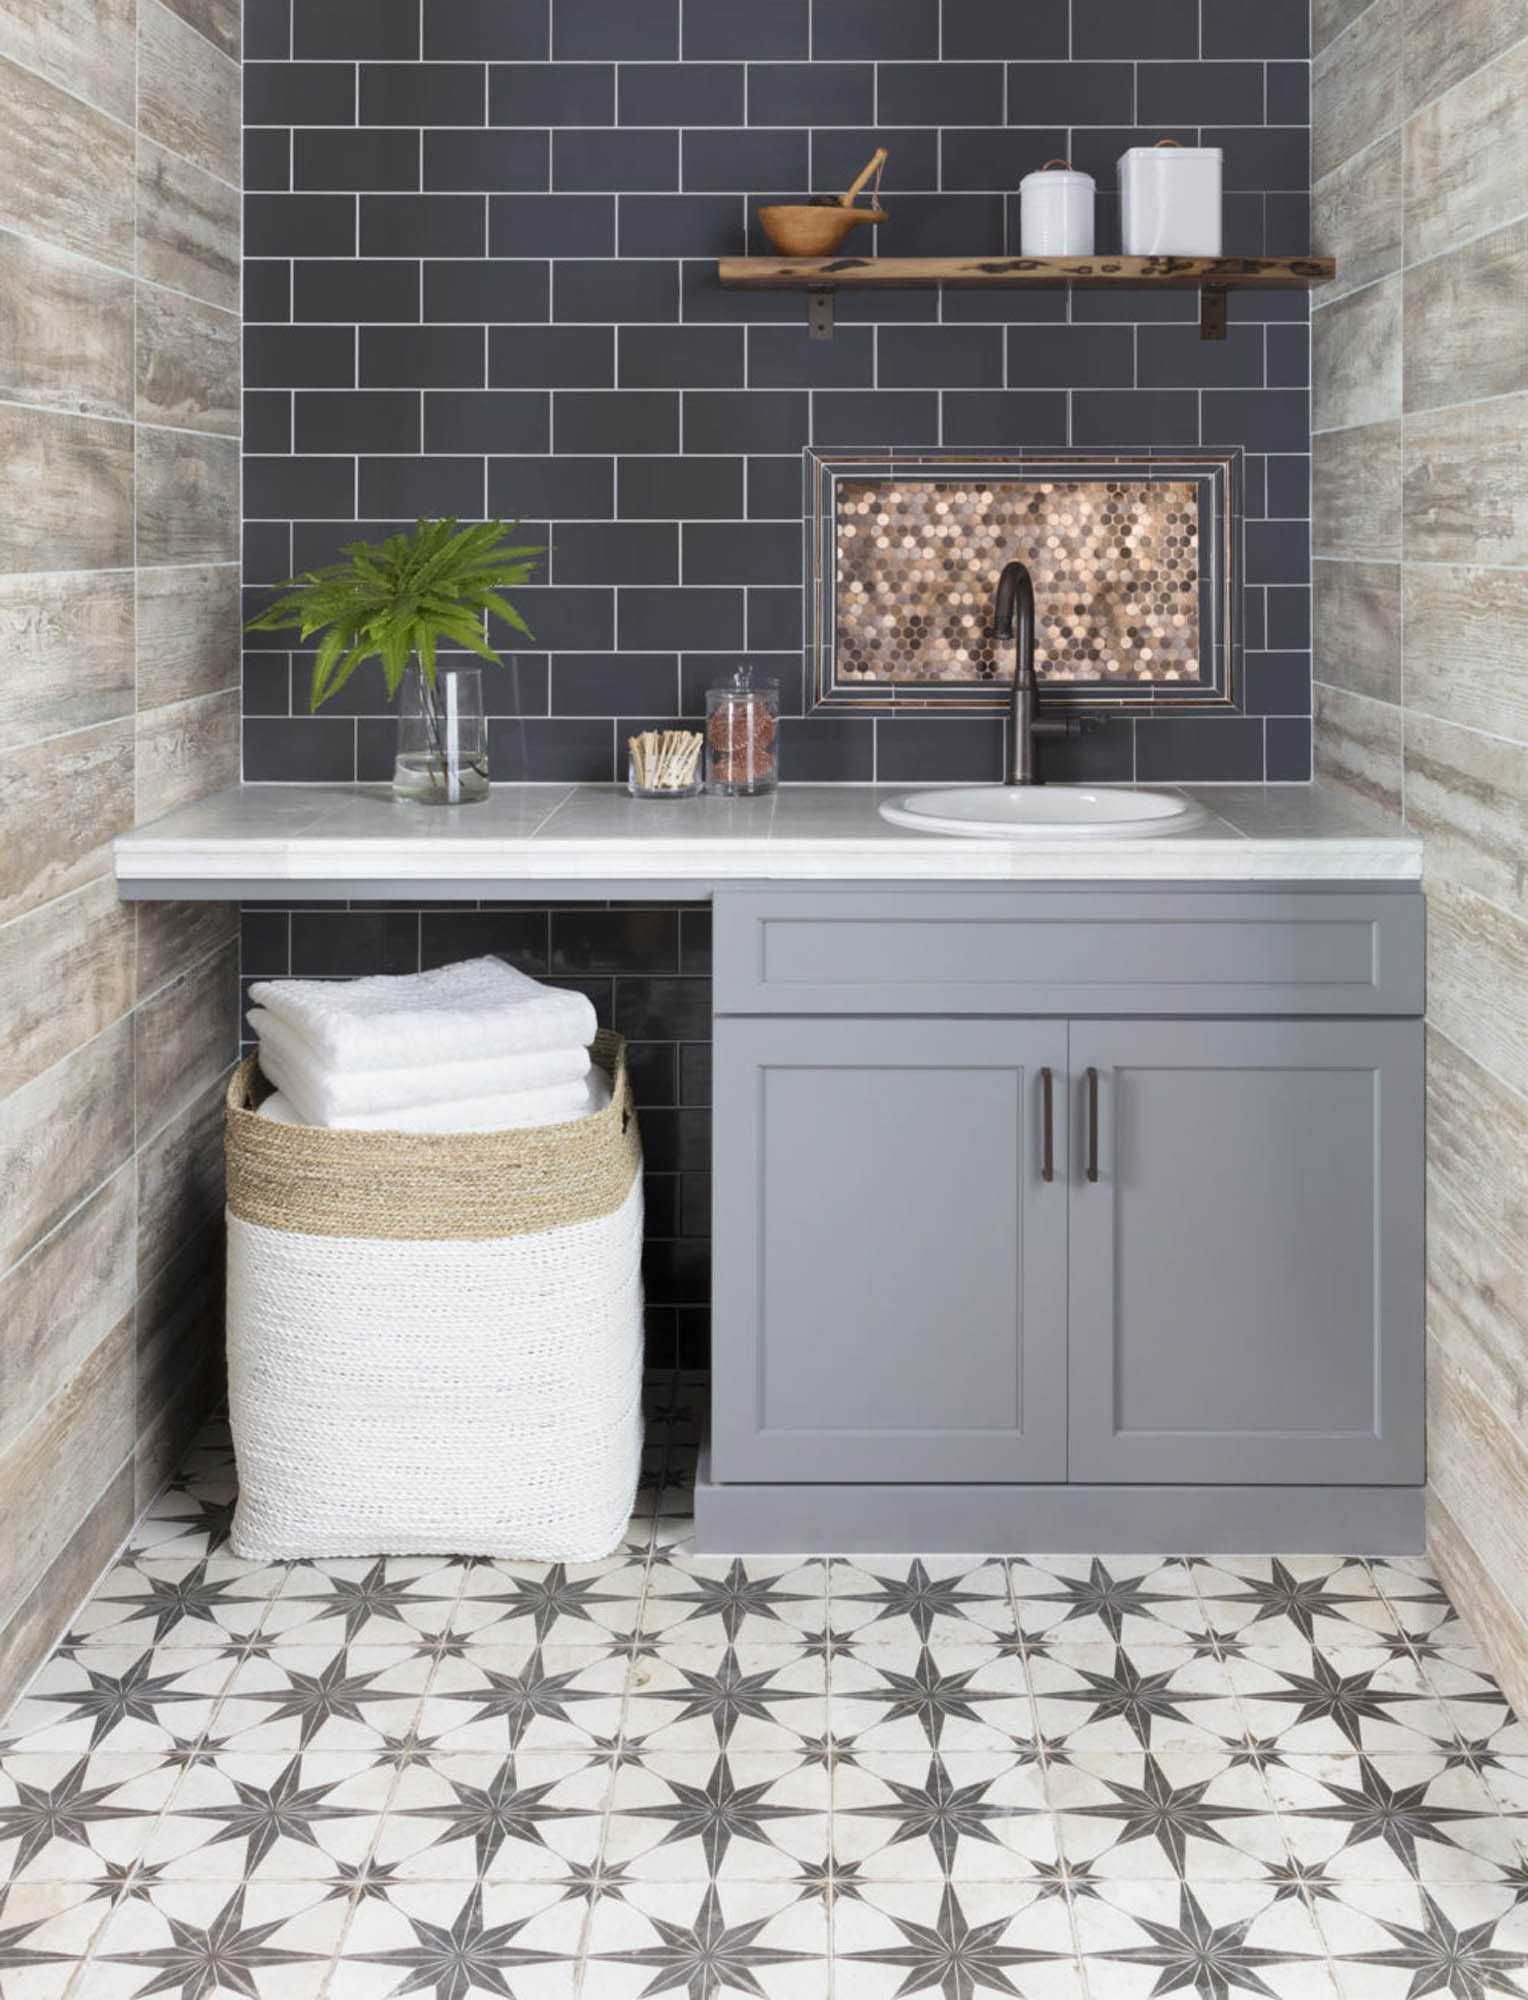 How To Achieve Modern Farmhouse Design With Tile The Tile Shop Blog